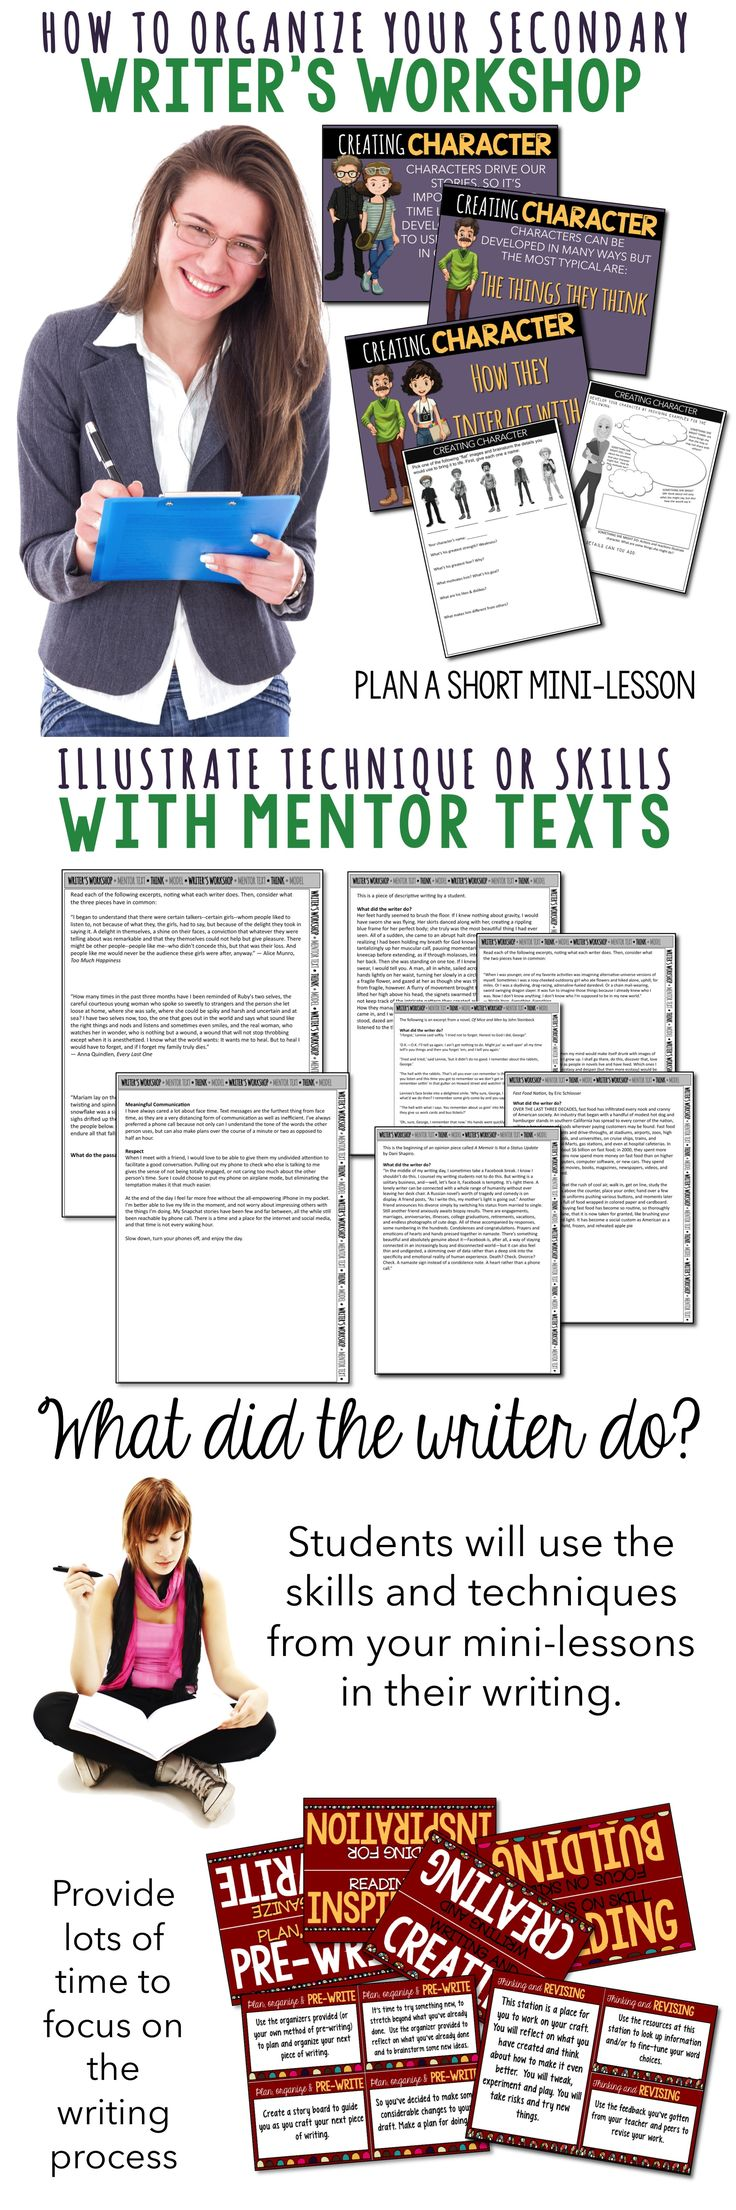 Let me help you with your workshop! I've got the mini-lessons, the mentor texts and the learning stations. You just need to supply the students! Come on over to Room 213.